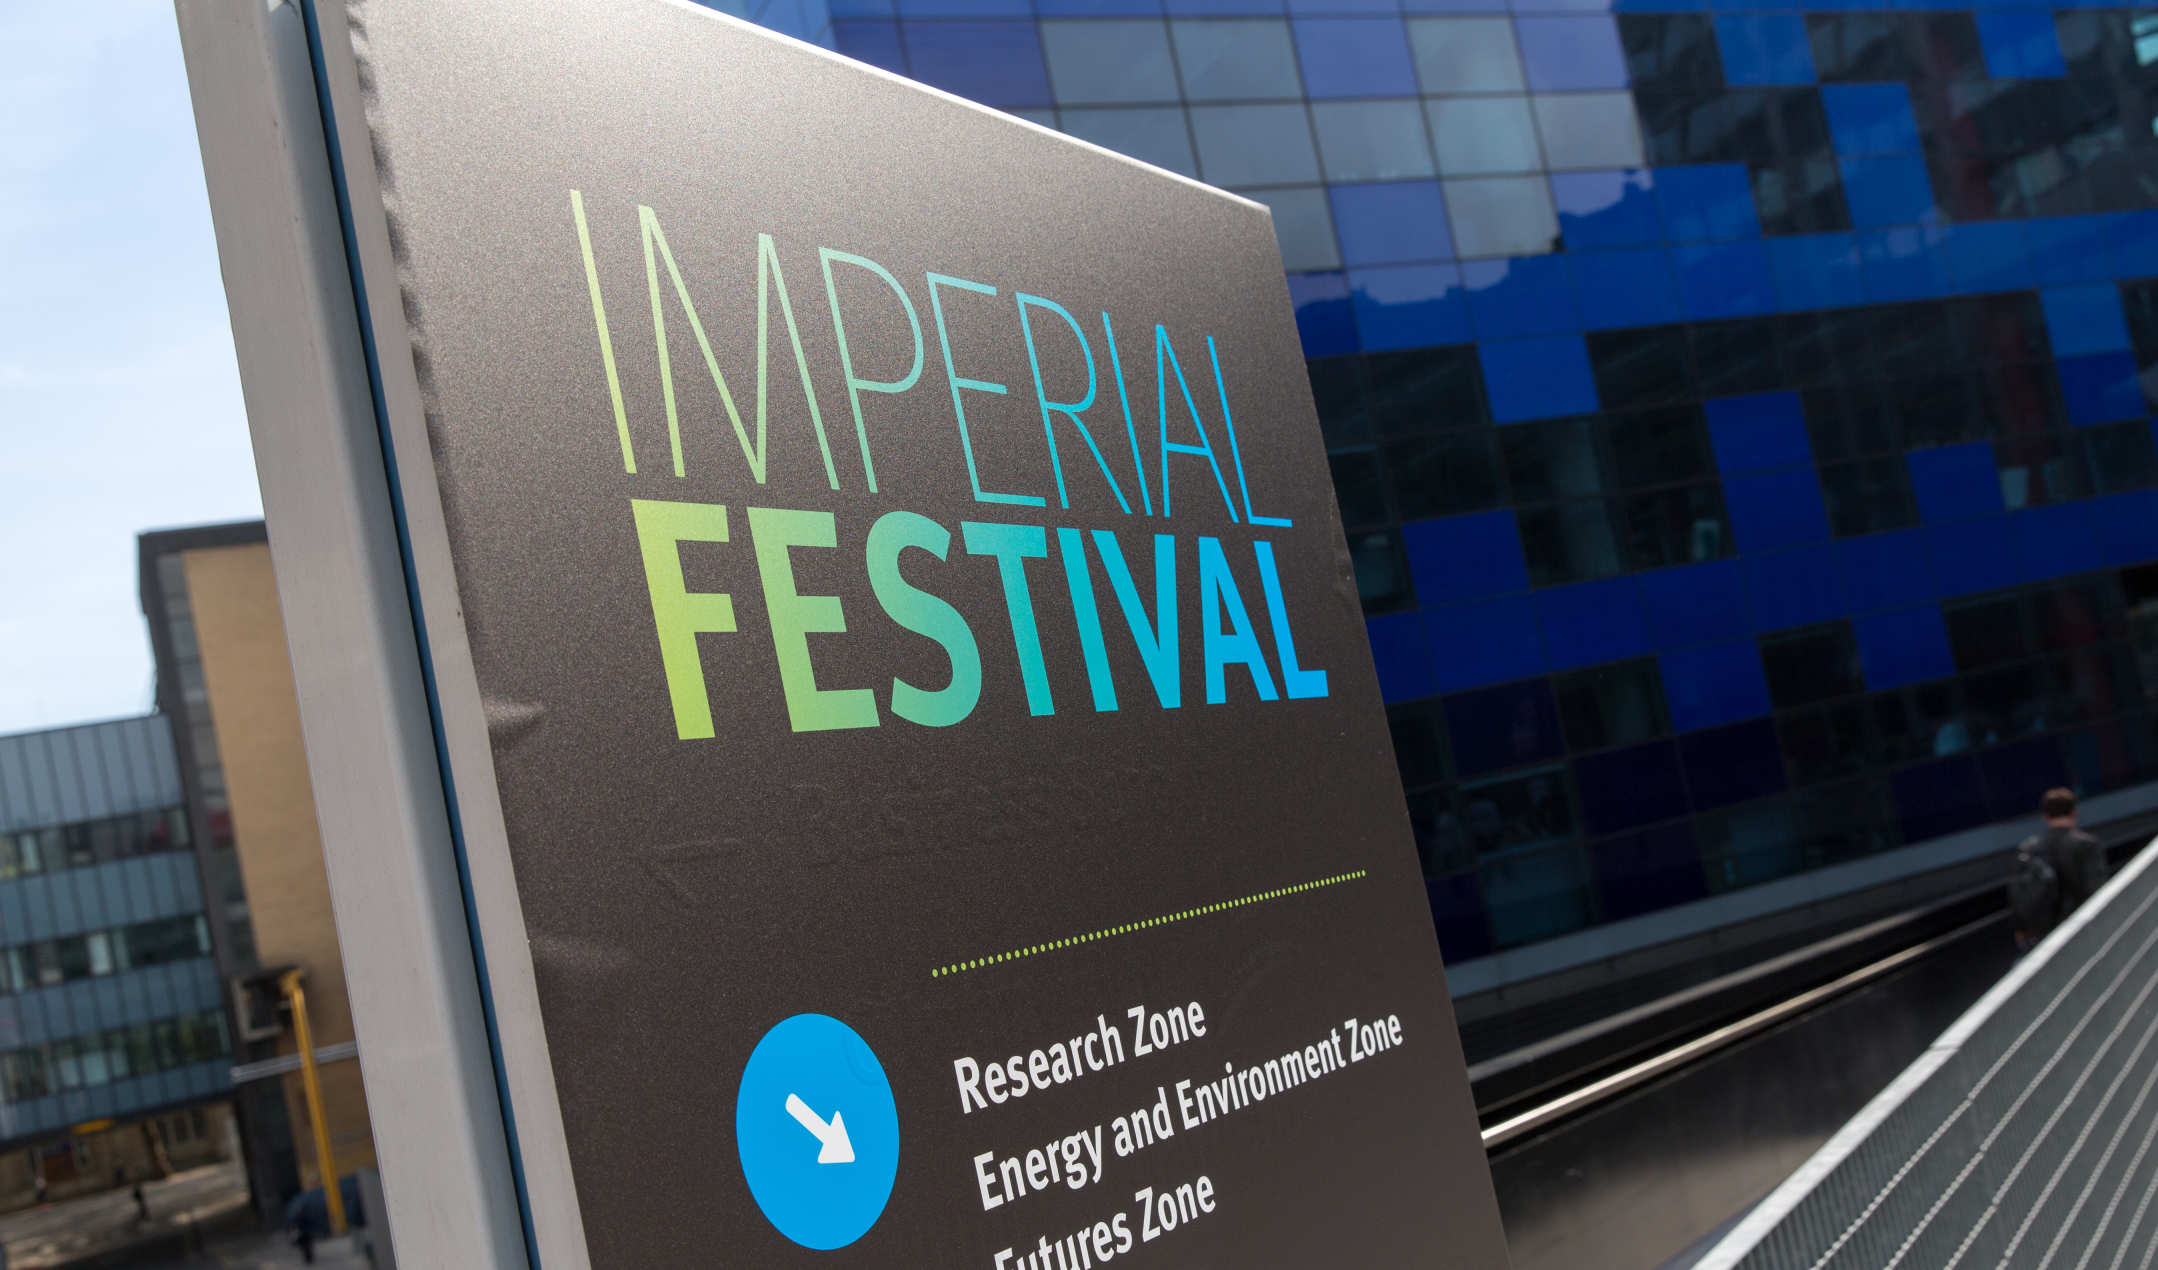 Imperial Festival 2016